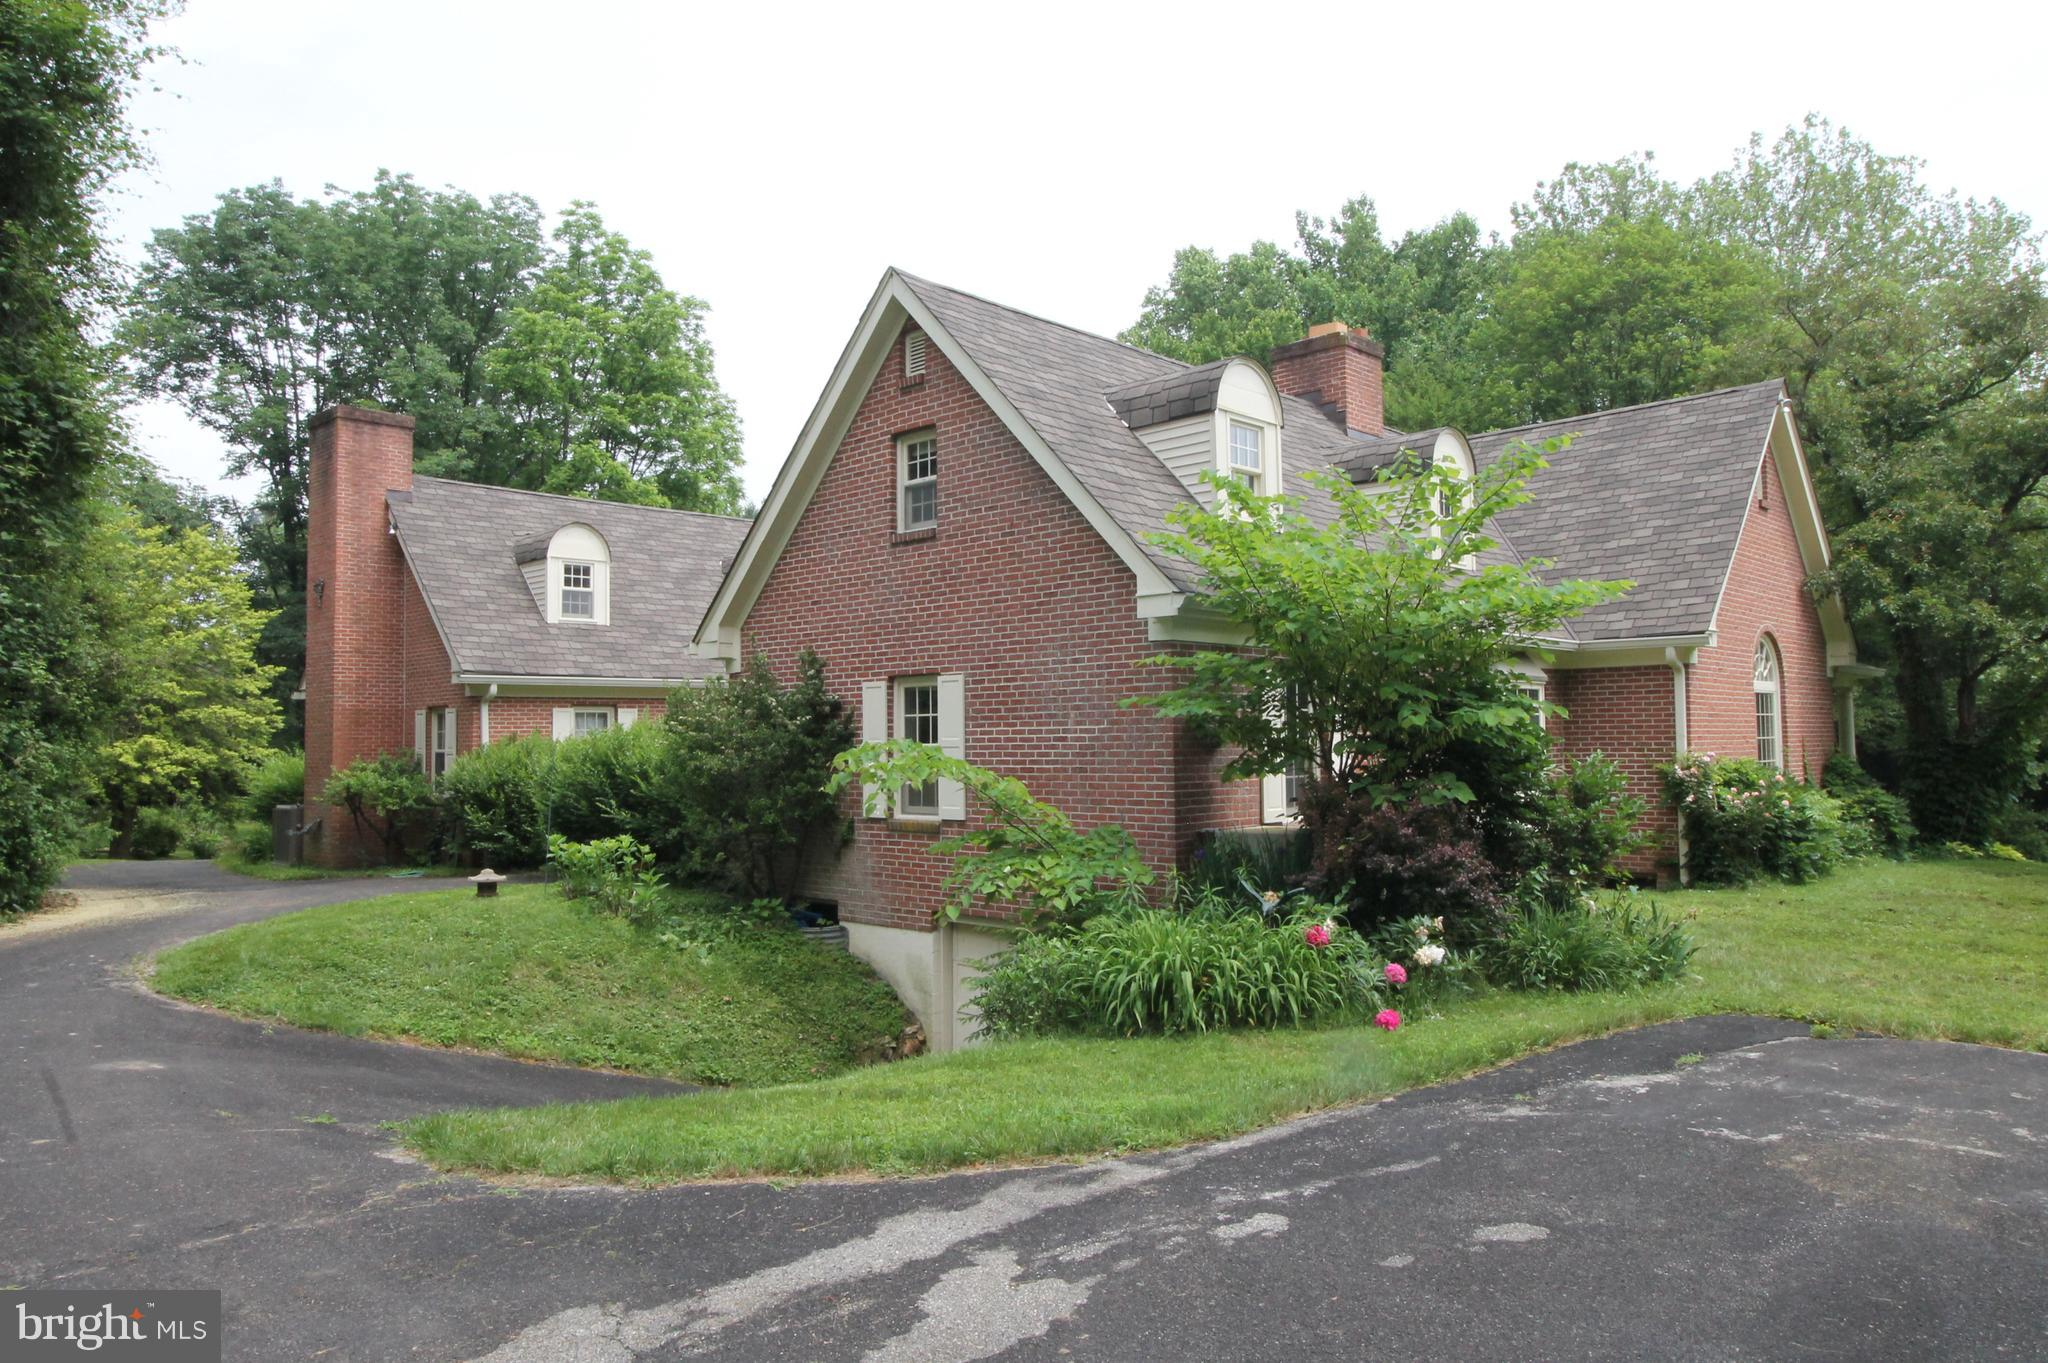 151 LLOYD ROAD, WEST GROVE, PA 19390